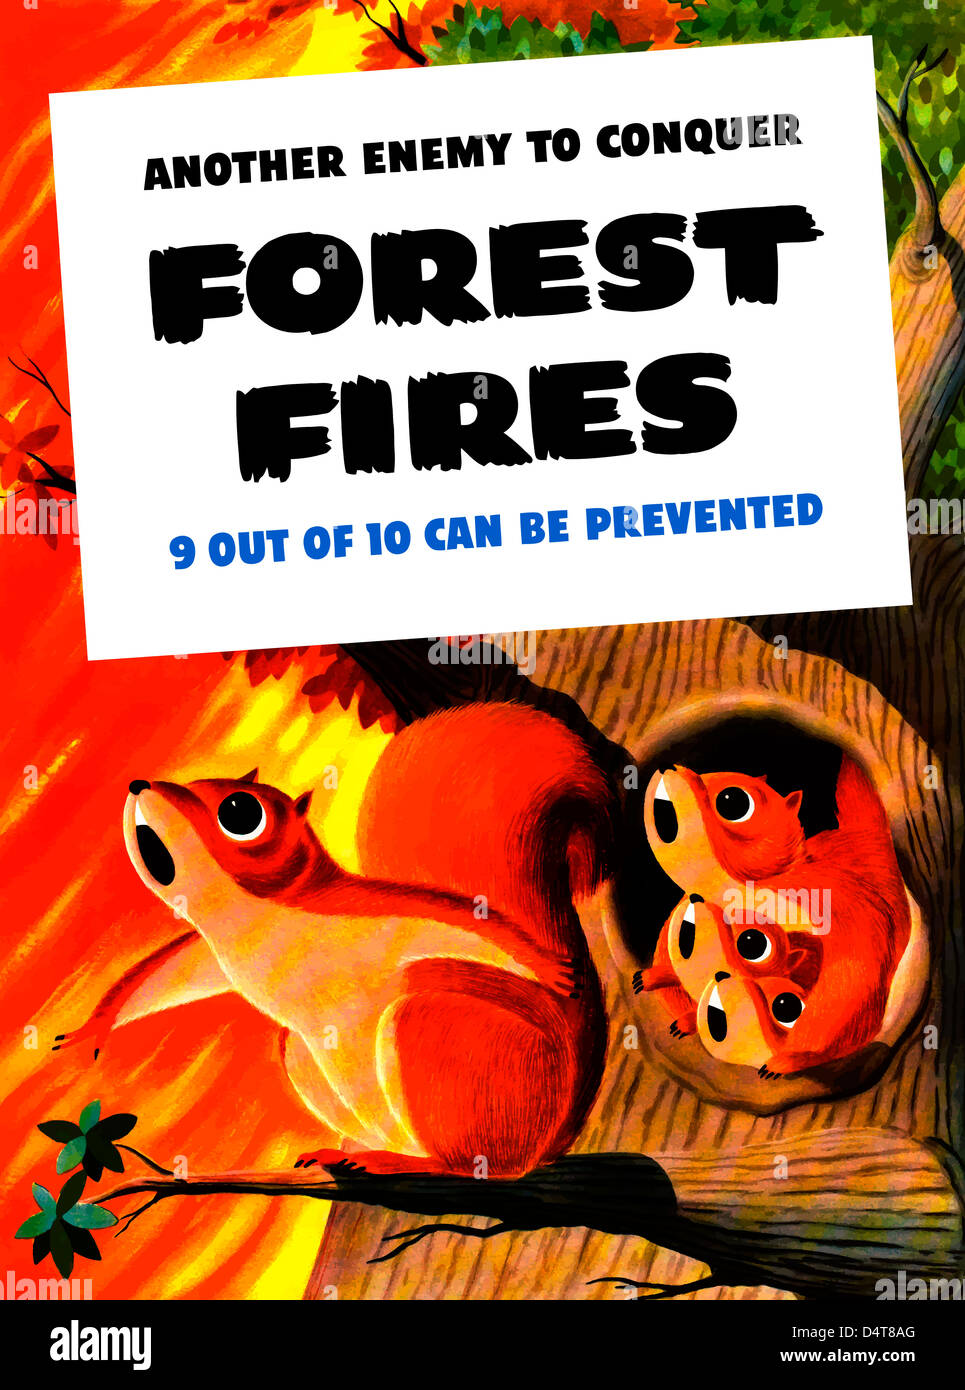 Vintage WW2 poster showing a family of squirrels surrounded by a forest fire. - Stock Image